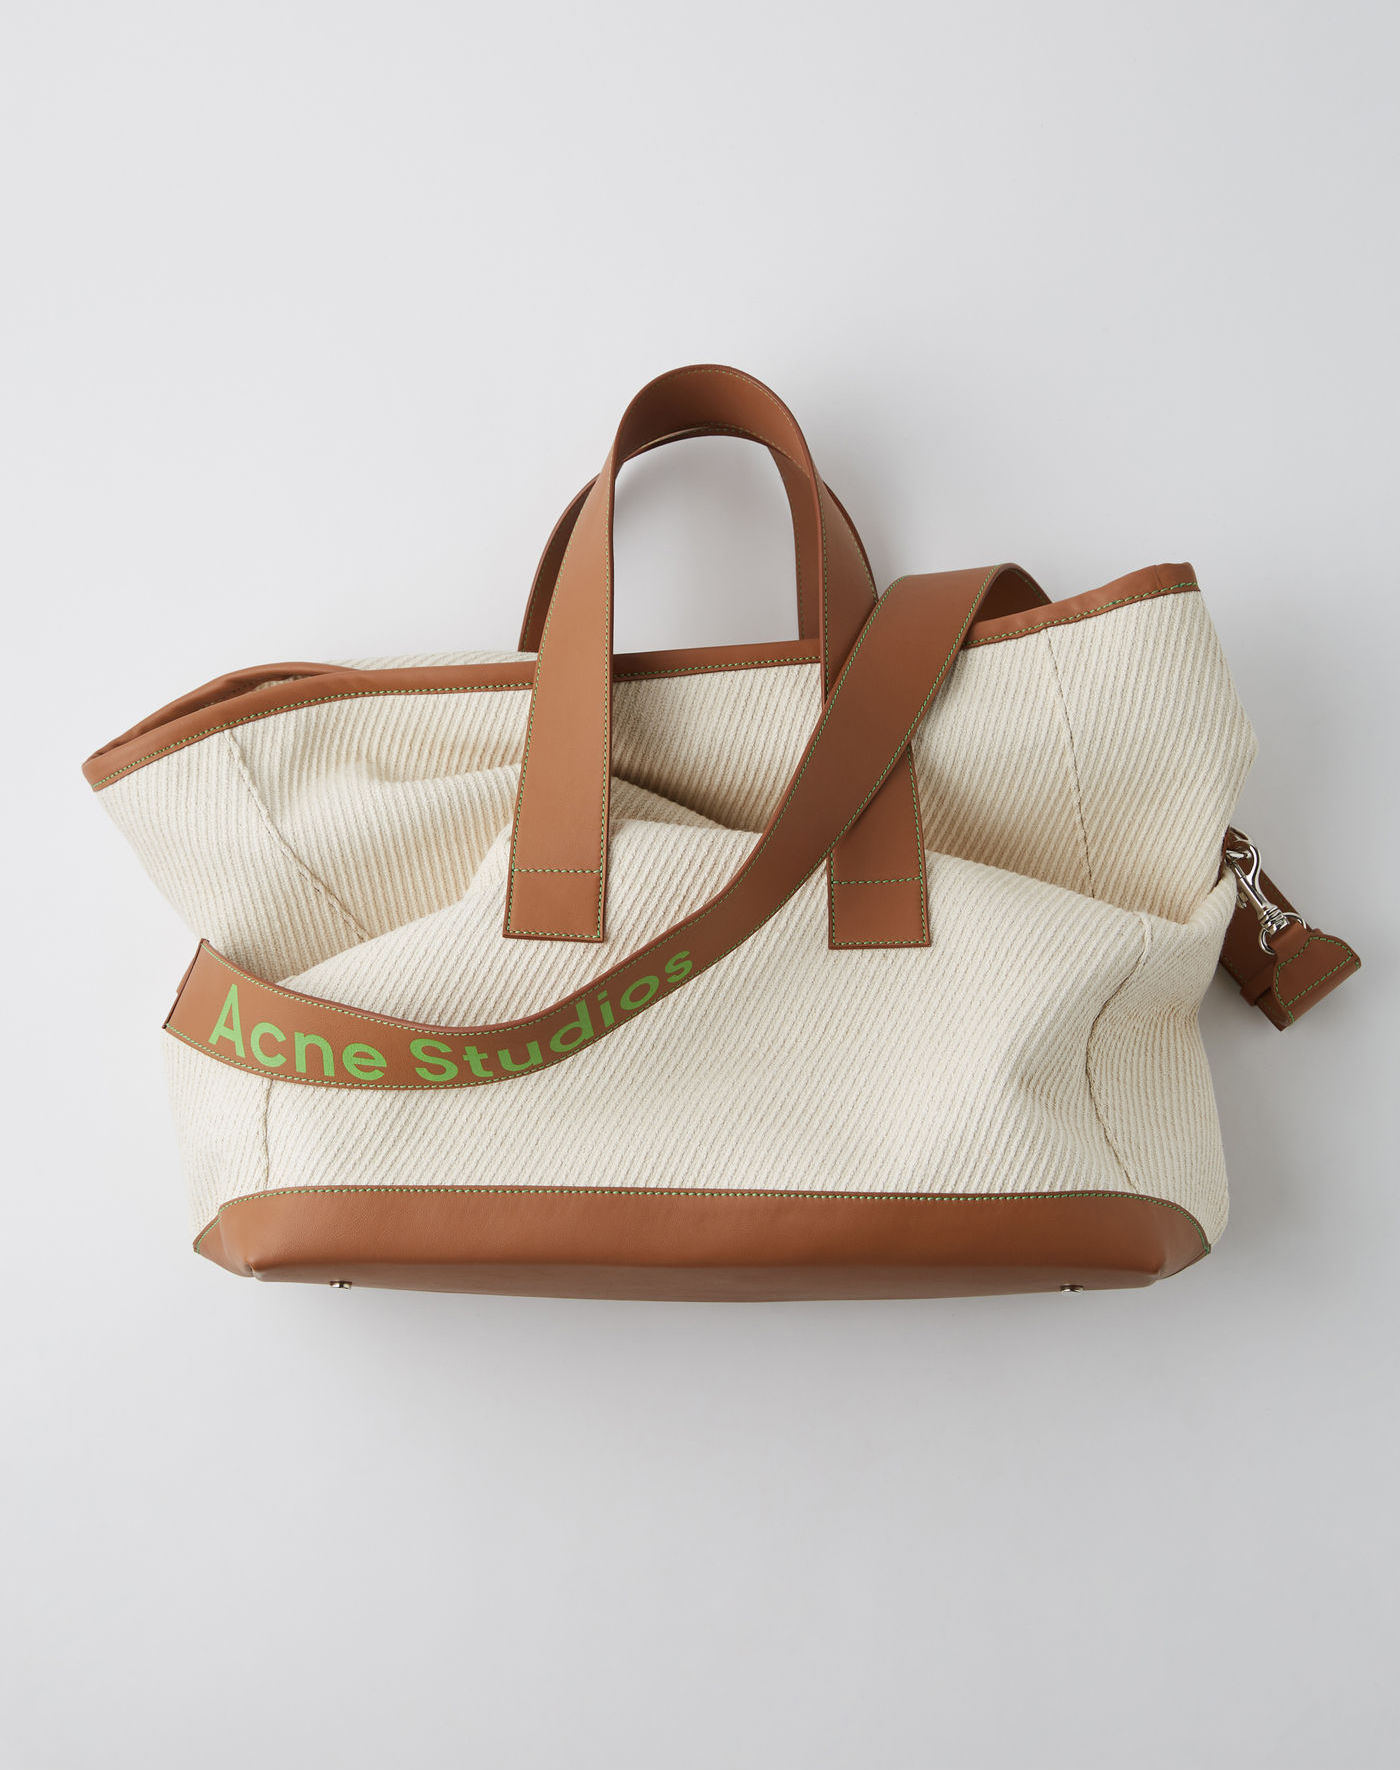 $1200 - Acne weekender bag   I love a great weekend bag and I love the classic beige and light brown colors with a pop of that Acne lime green! The perfect combo of classic and contemporary!